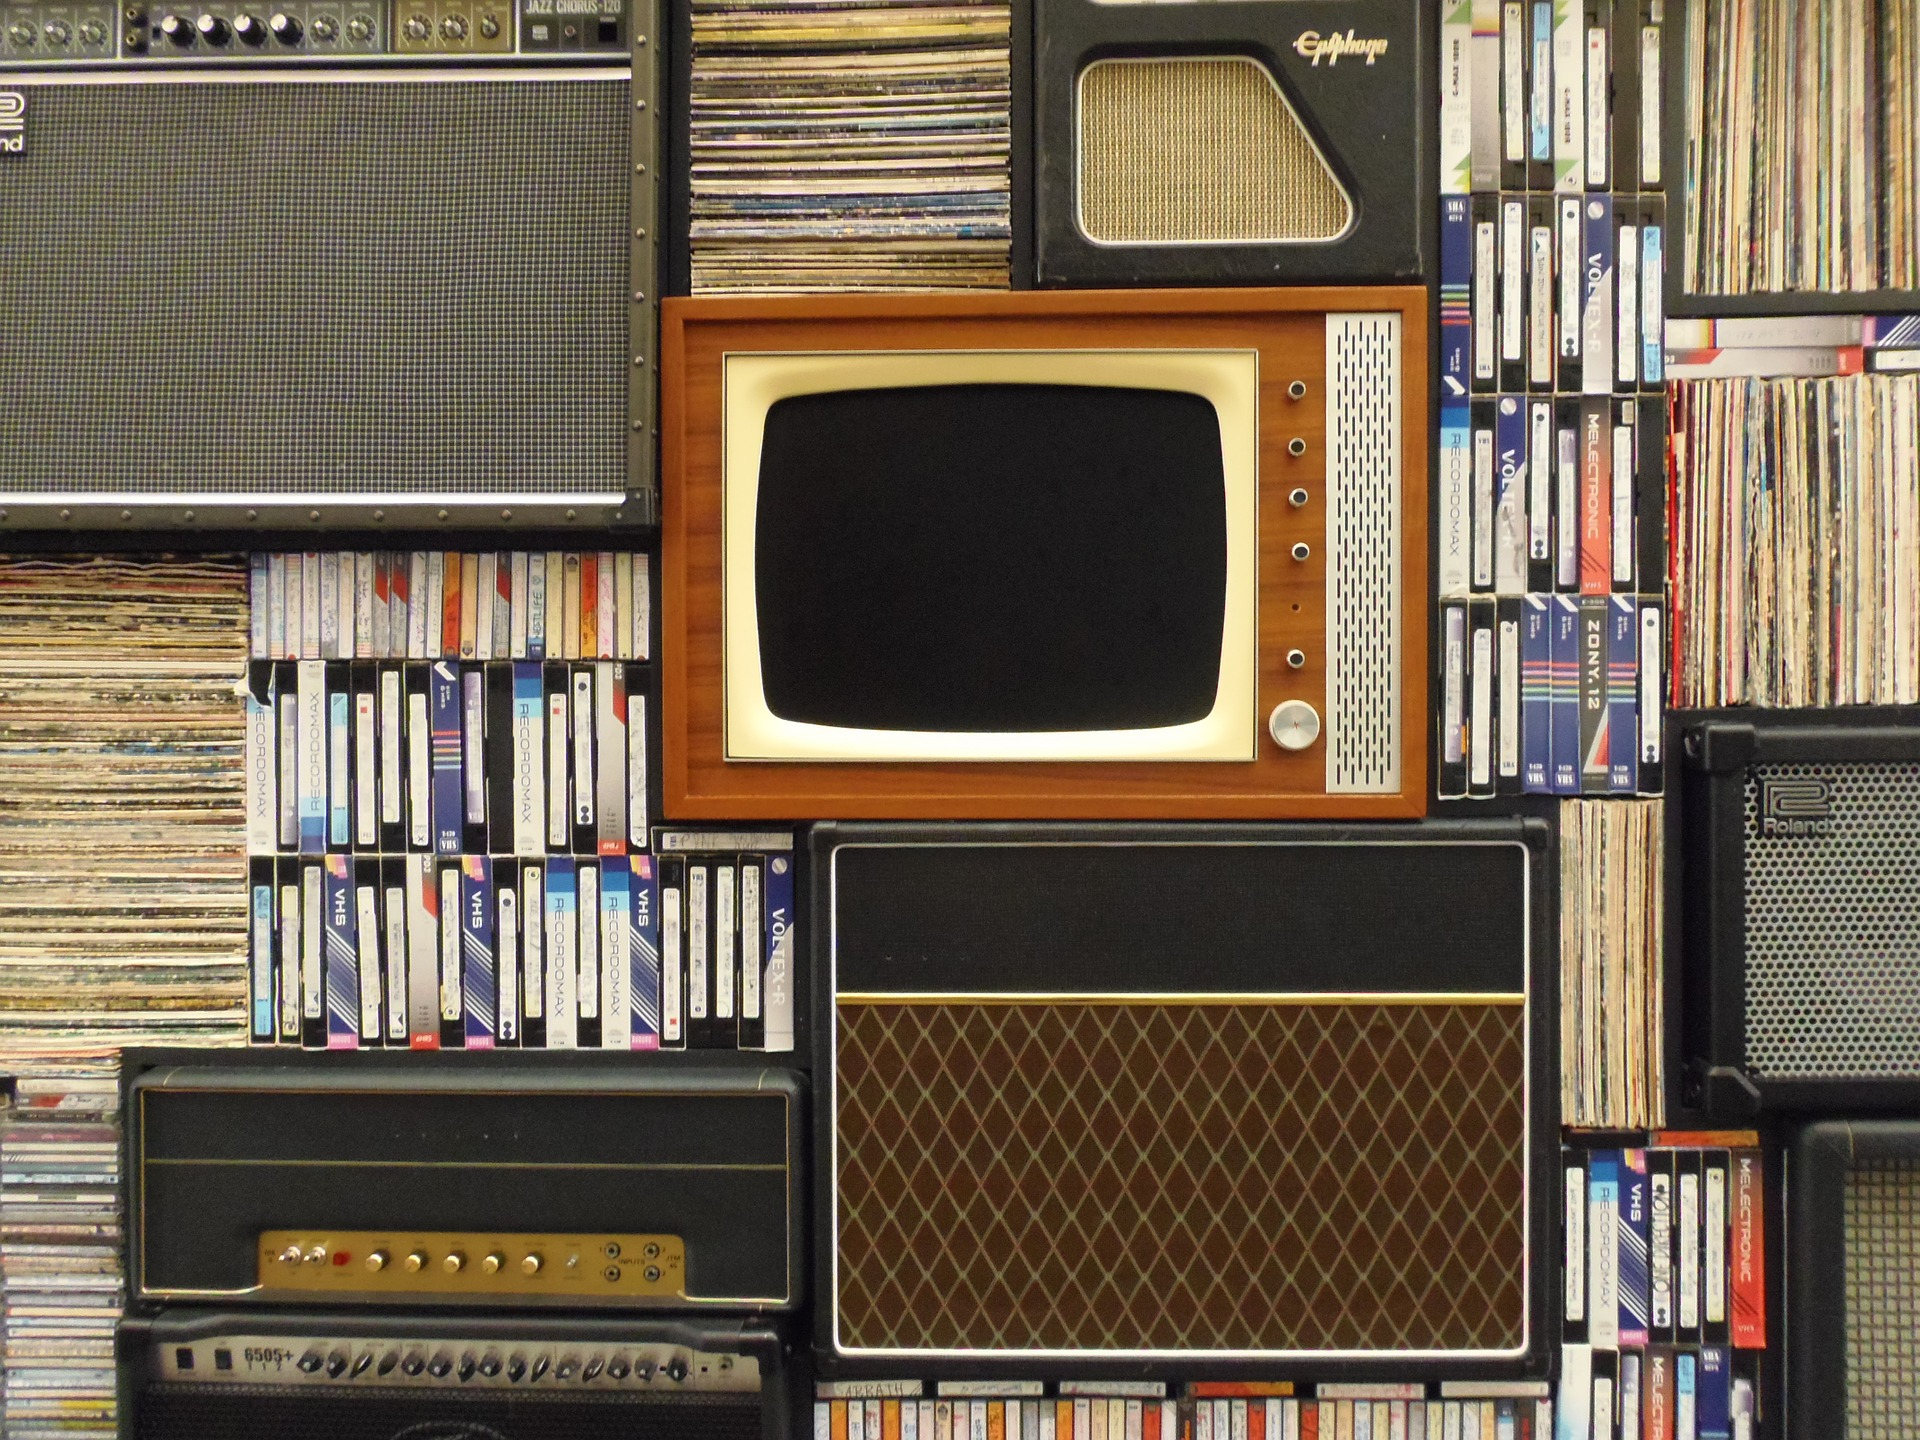 While your tv might not look like this any more, any way of watching videos can help you improve your language skills.